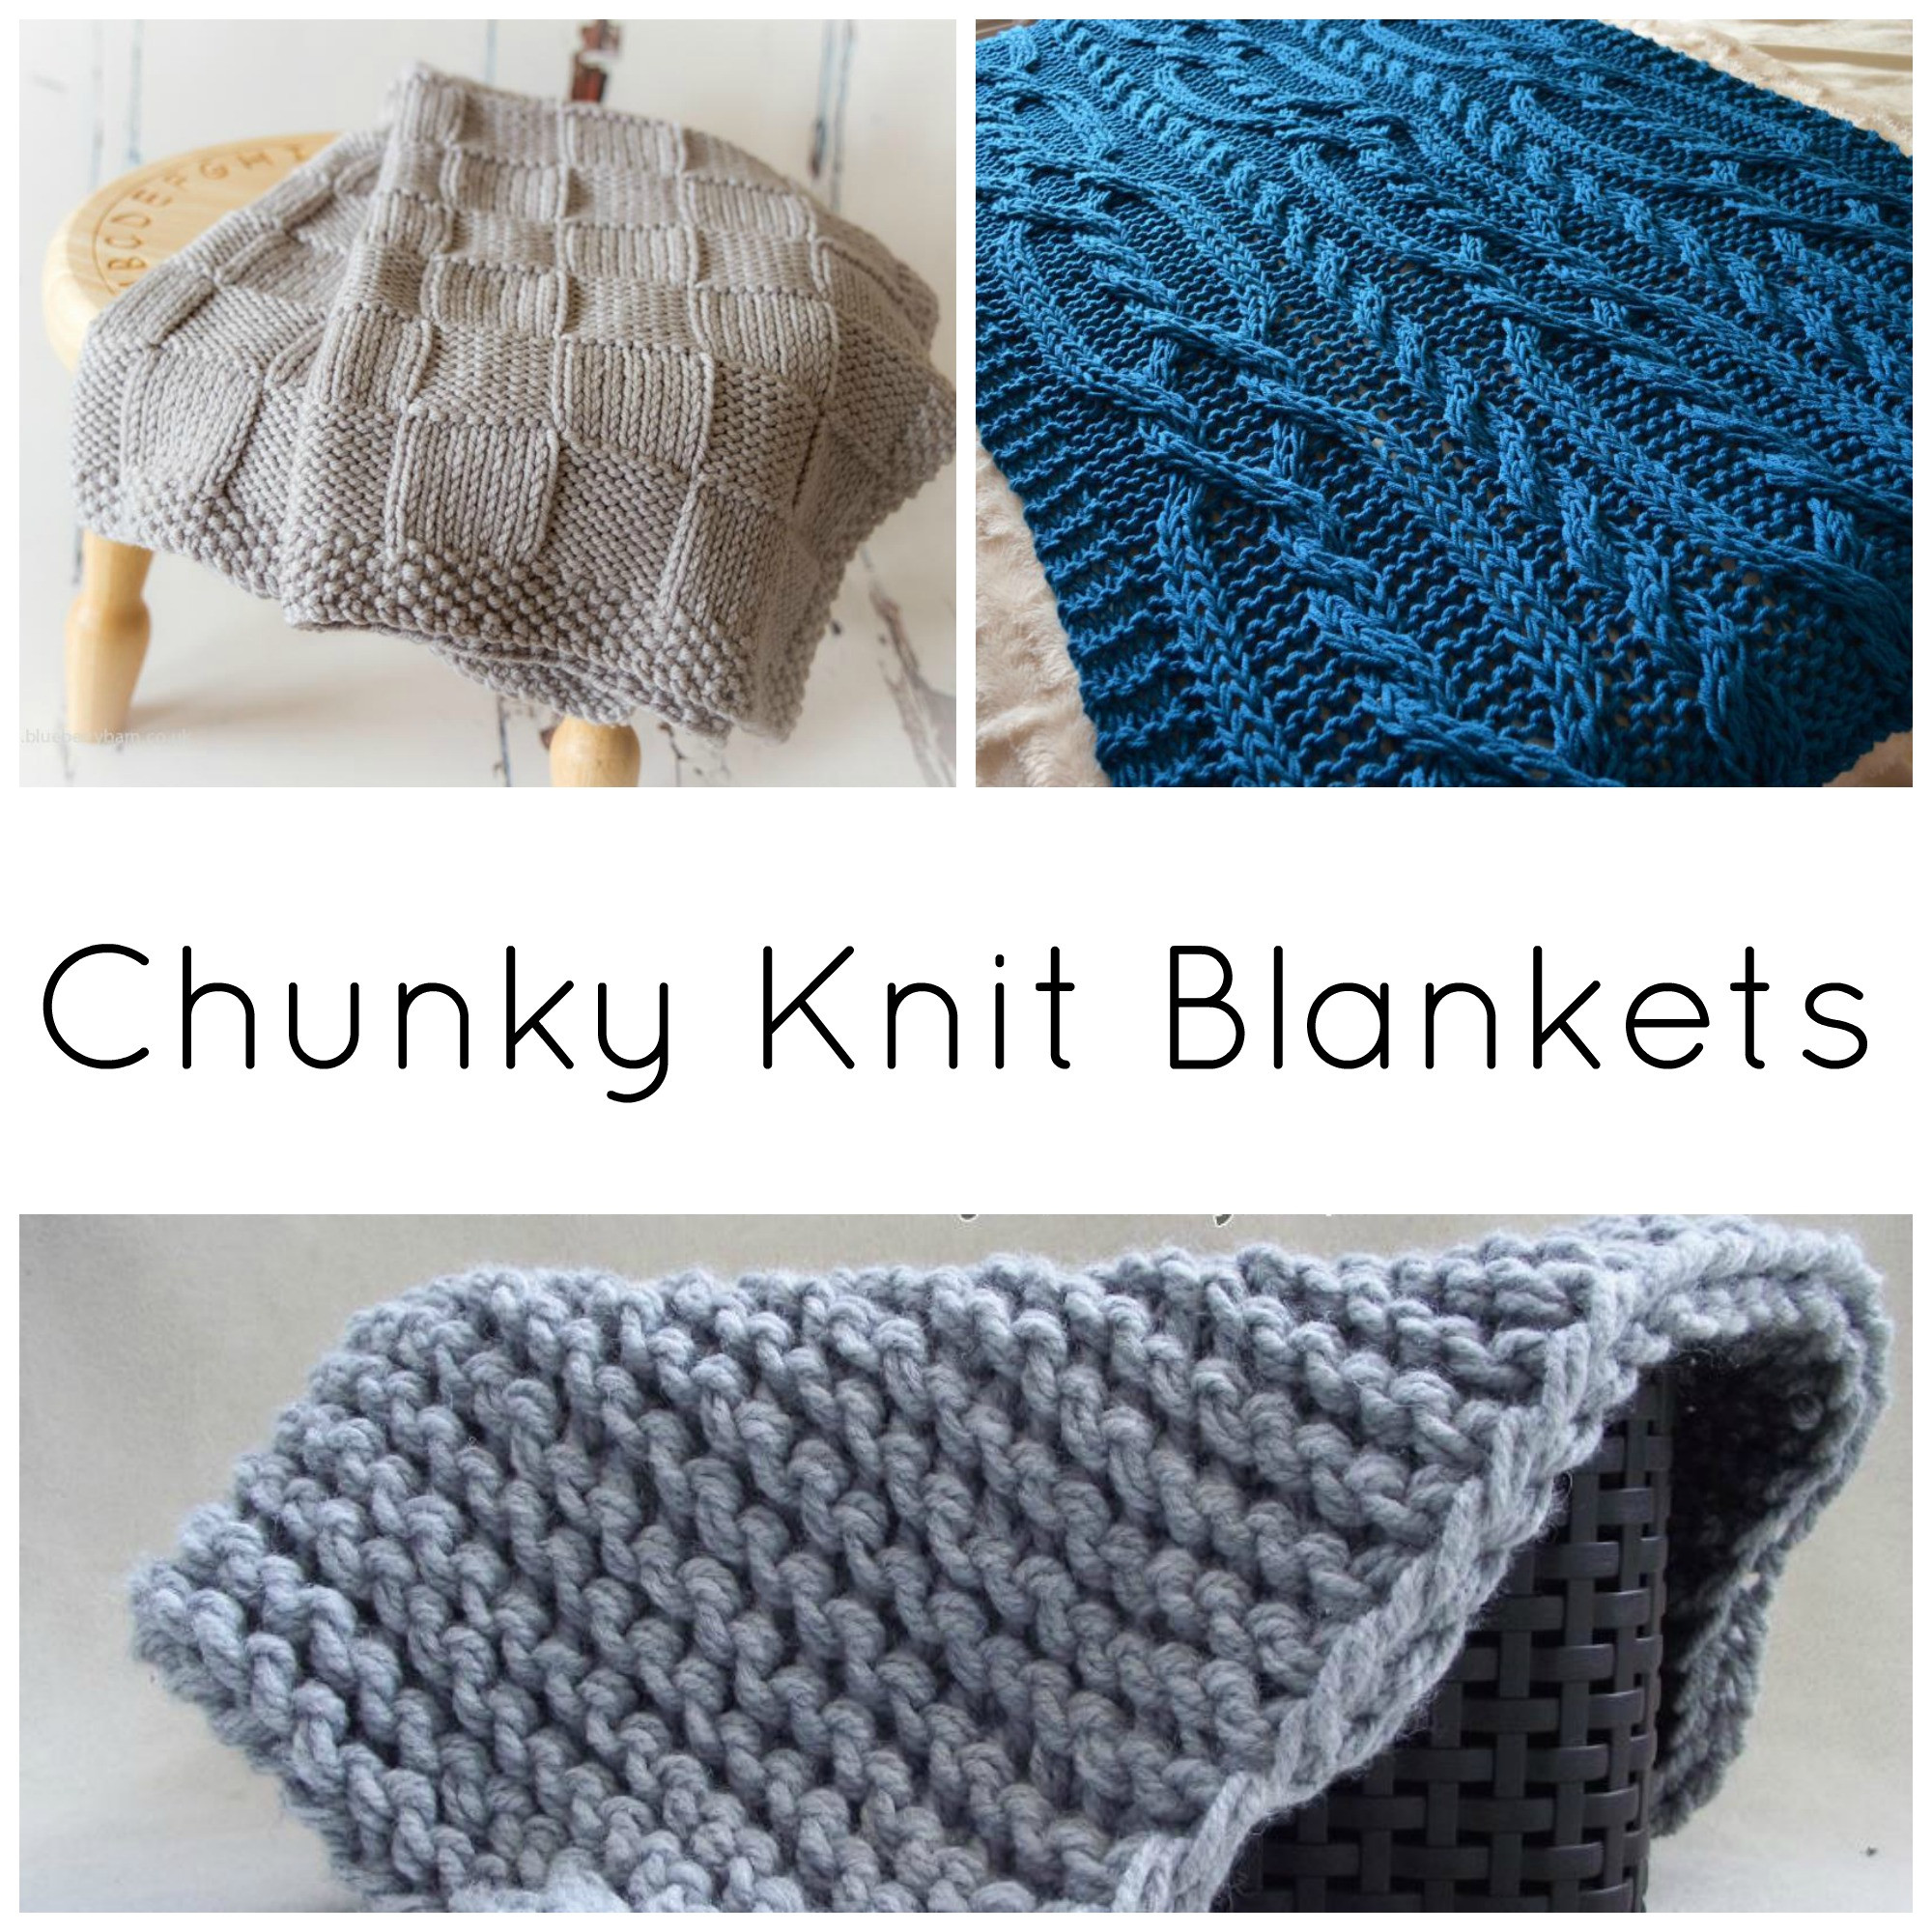 Awesome 10 Quick & Cozy Chunky Knit Blanket Patterns On Craftsy Chunky Knit Of Incredible 50 Pictures Chunky Knit